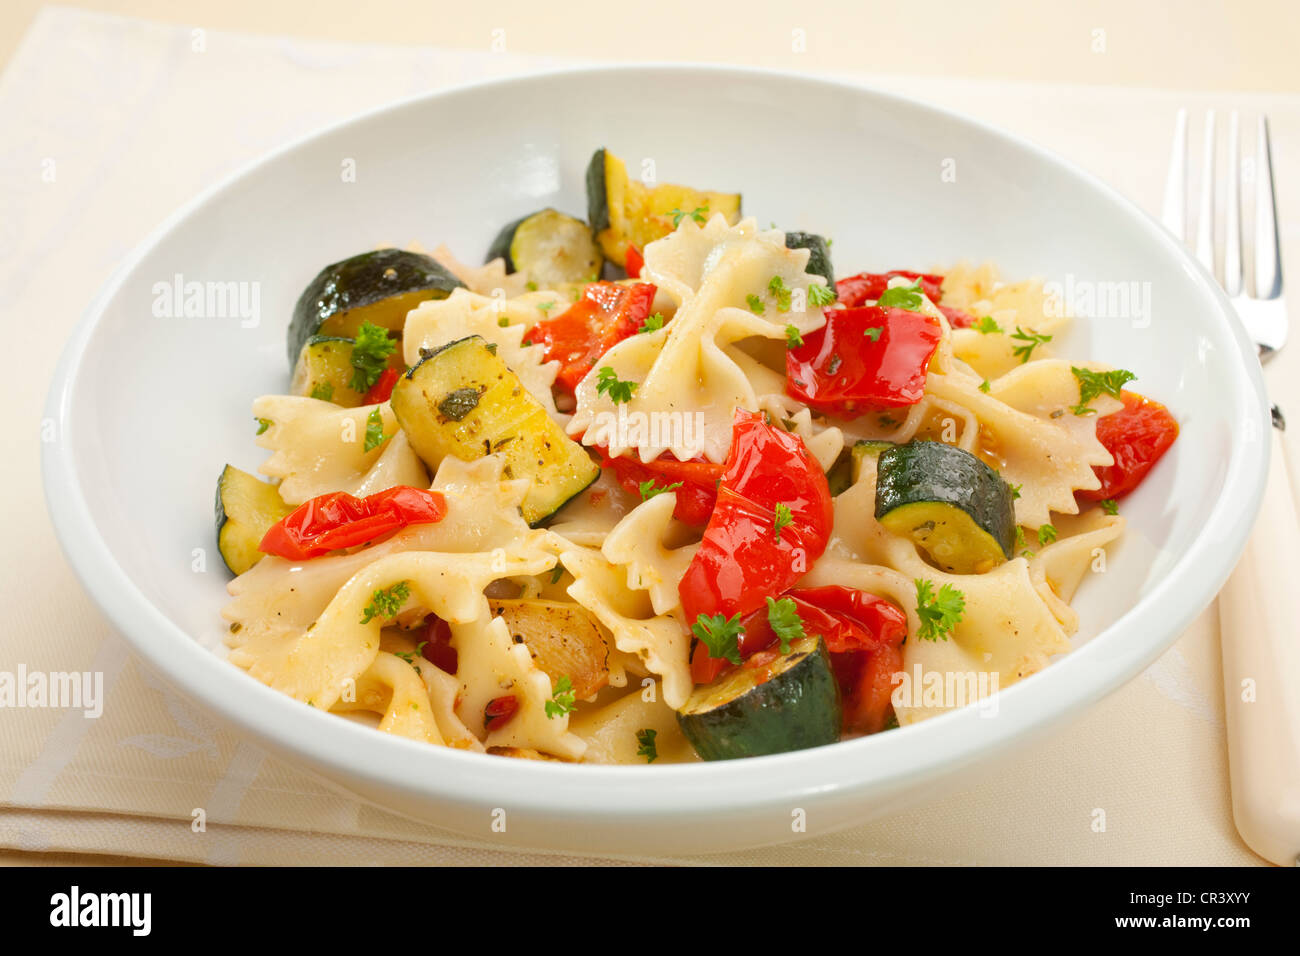 A bowl of pasta bows or farfalle with roast courgettes or zucchini, red pepper and tomato with olive oil and herbs. Stock Photo